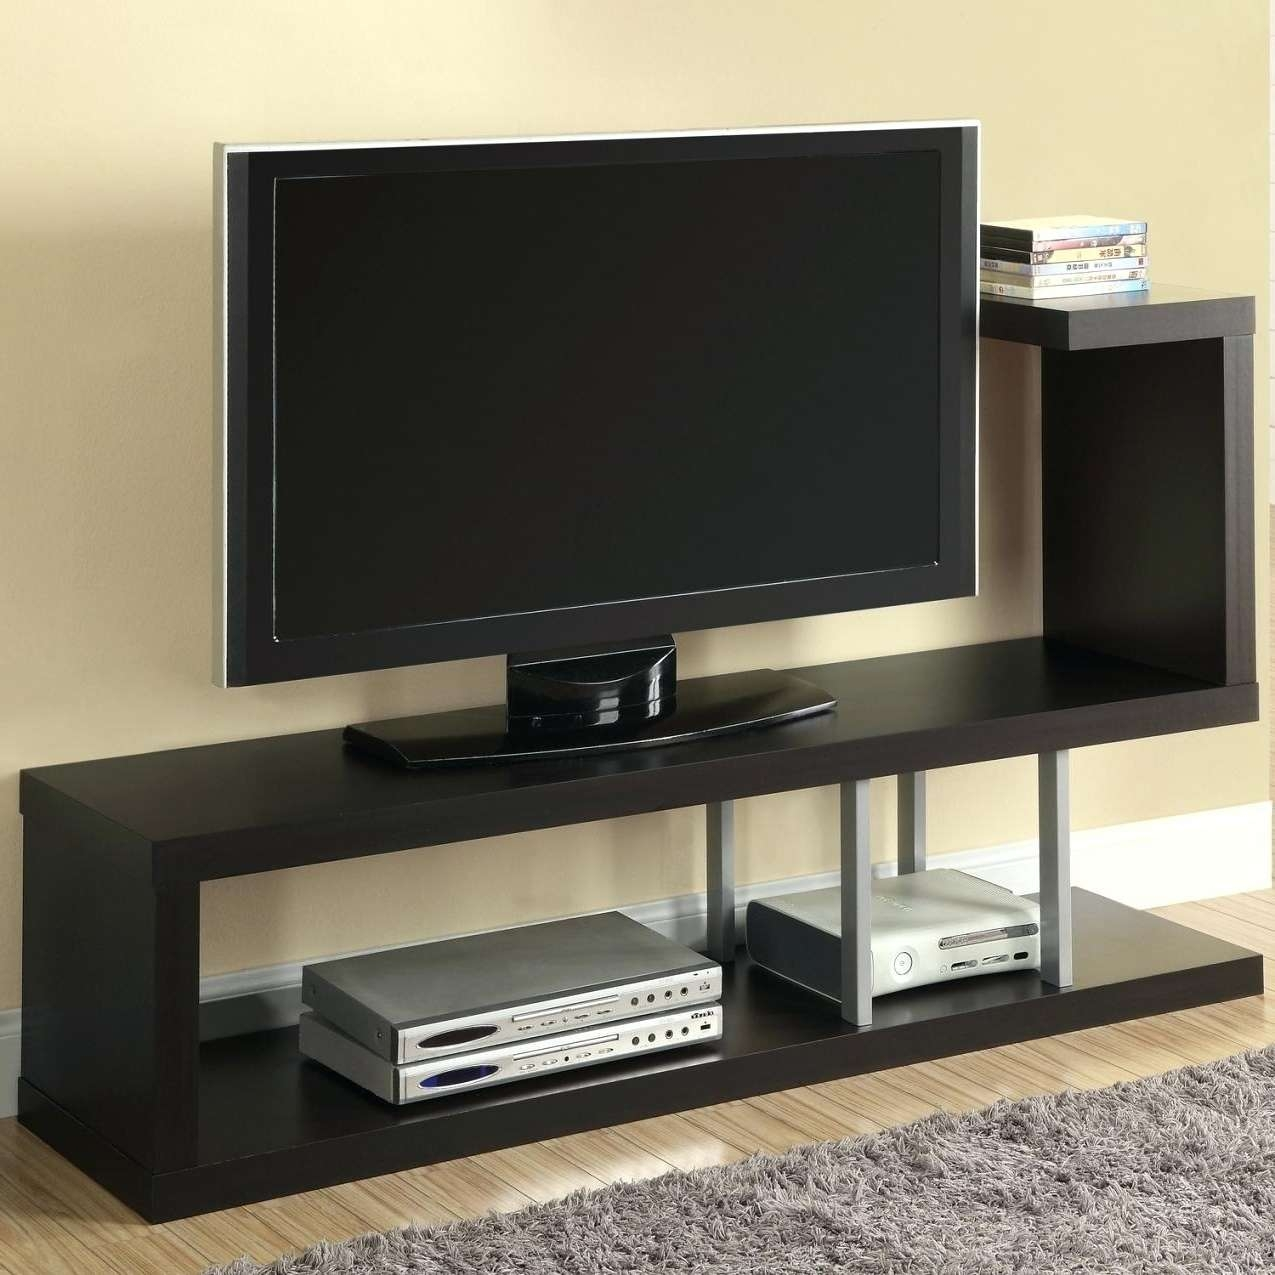 Tv Stand: Unique Tv Stand Ideas. Unique Tv Stands Ideas (View 10 of 15)